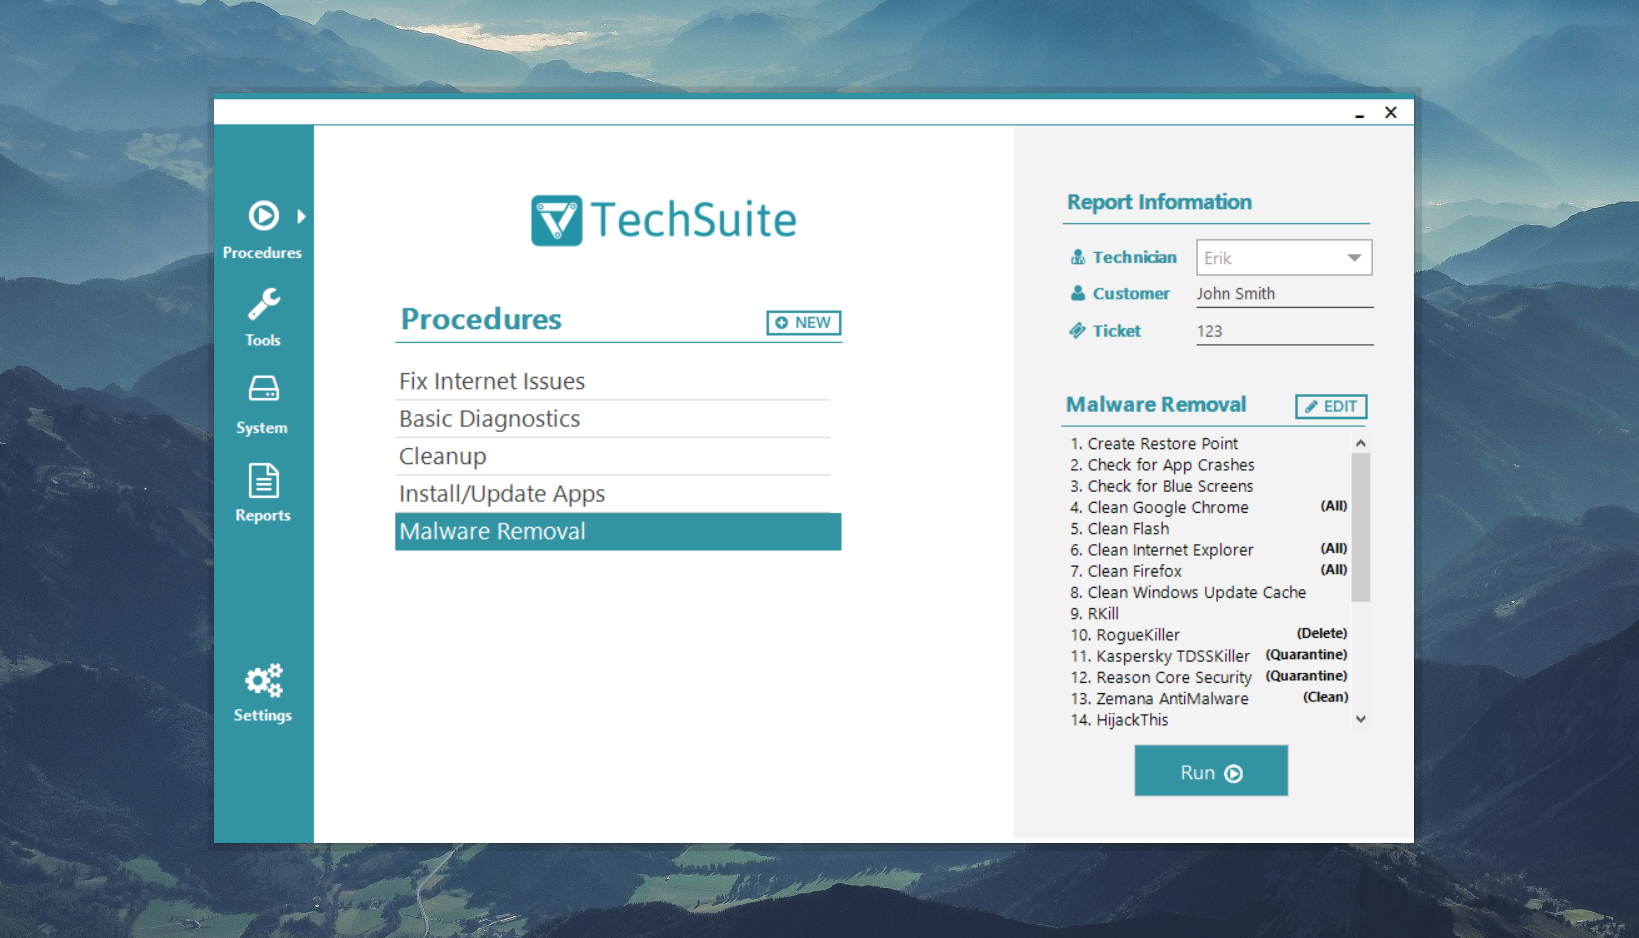 TechSuite Windows App automates your computer repair checklist from within Windows